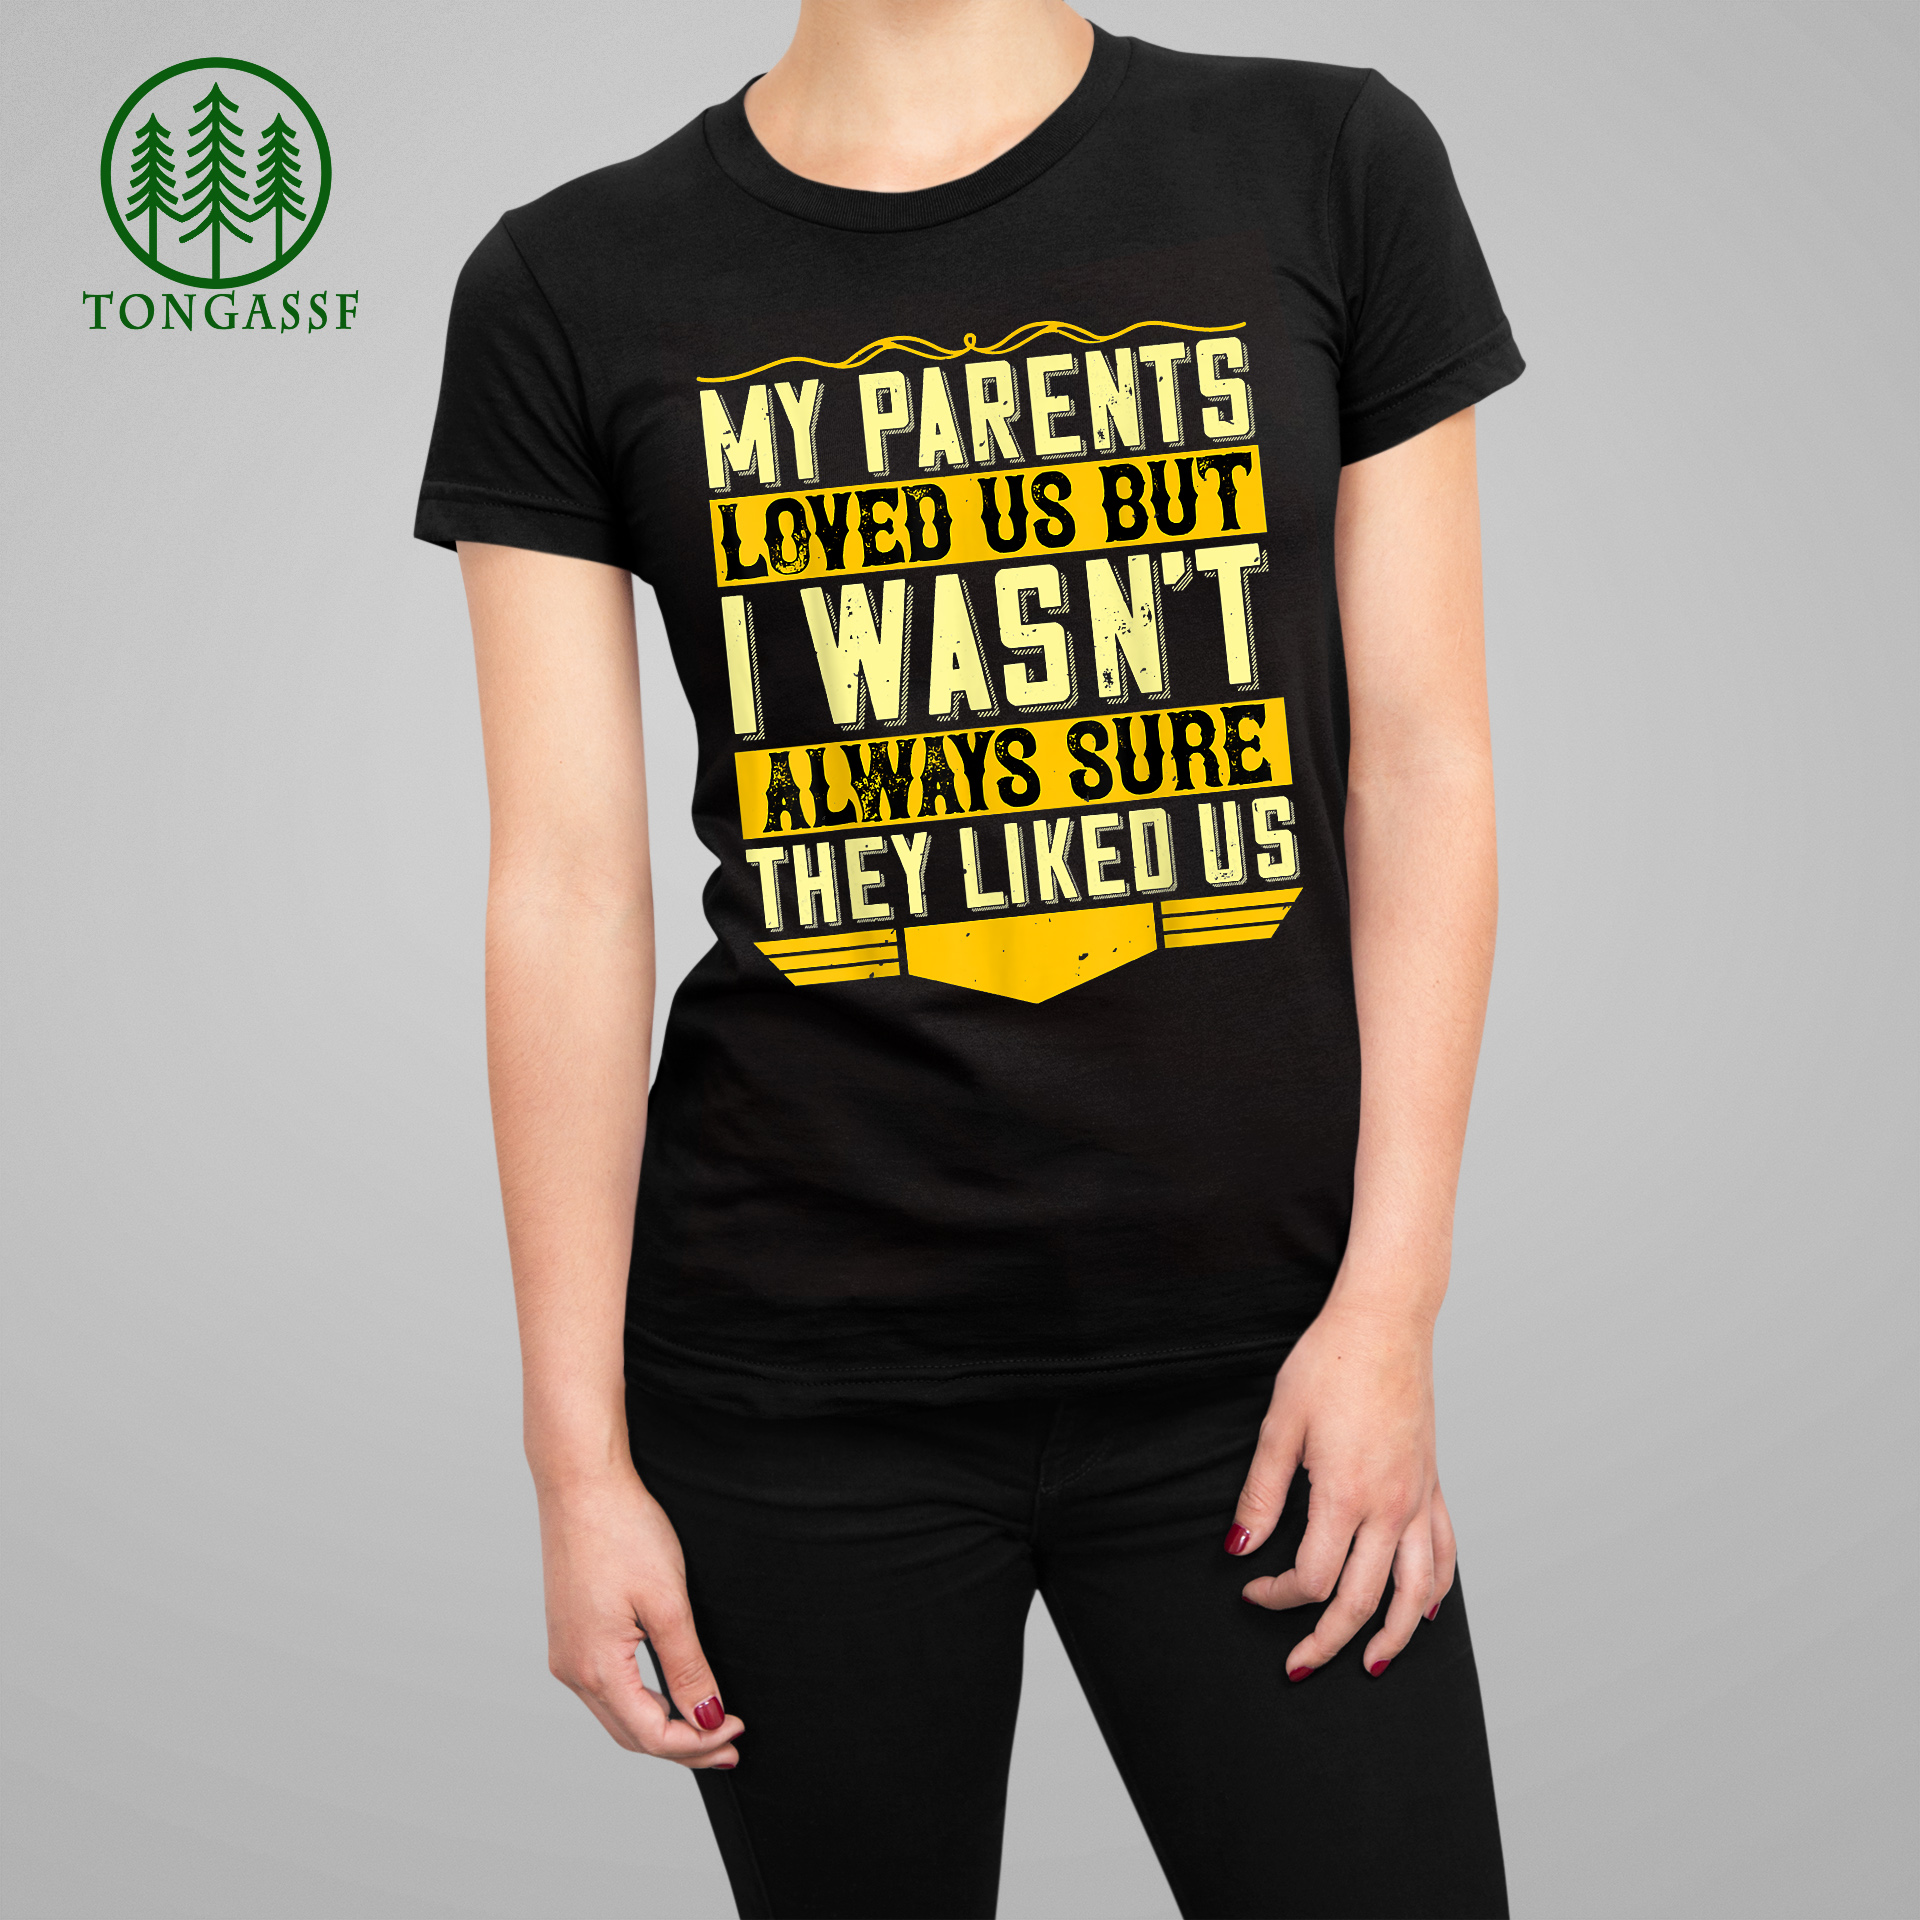 My Parents Loved Us But I Was not Always Sure They Liked Us T Shirt